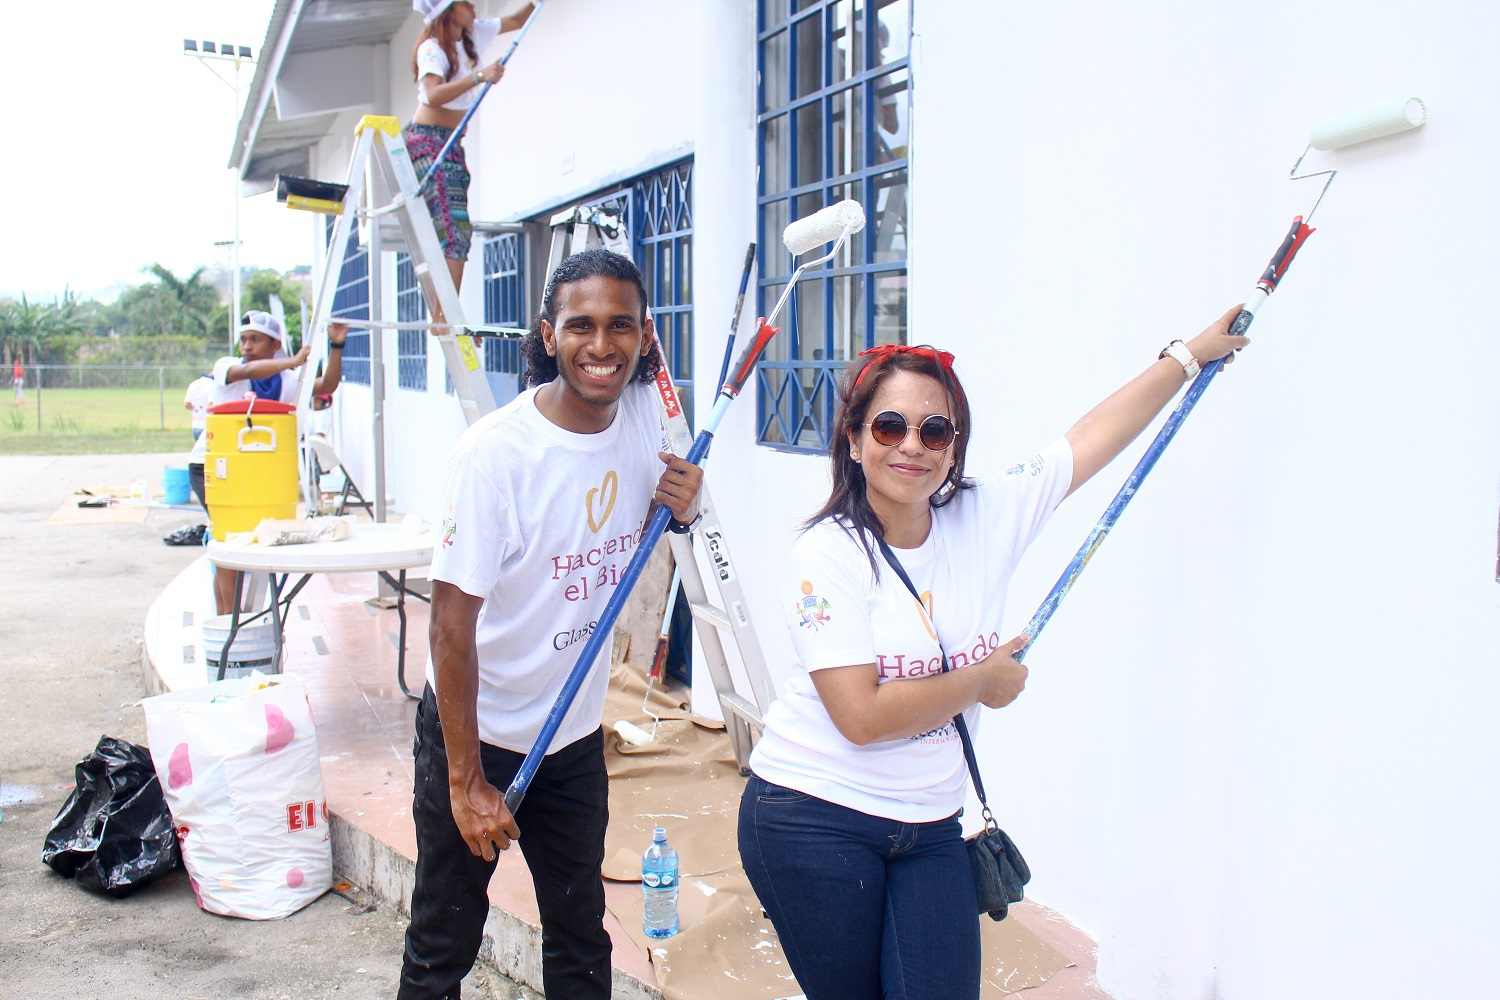 (Photo: Glasswing employees from Panama taking part in Good Deeds Day 2017)